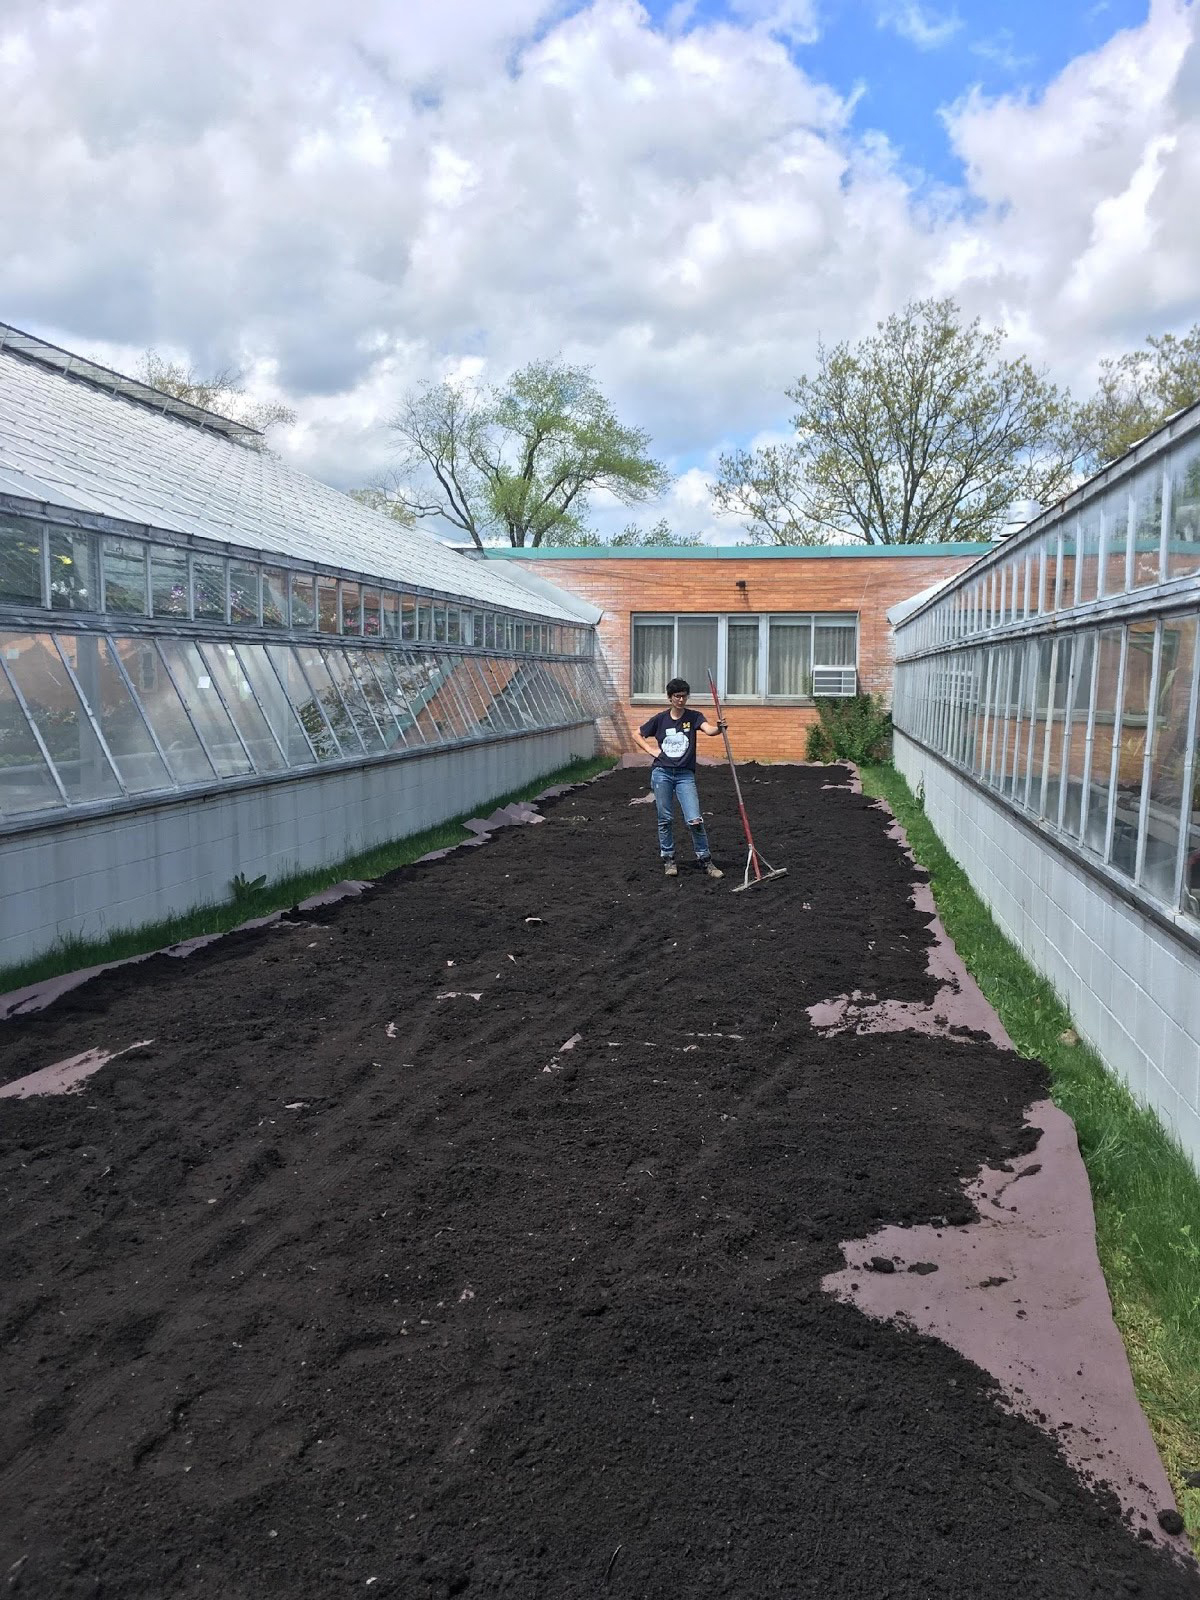 Laying down compost in the heritage seeds garden space